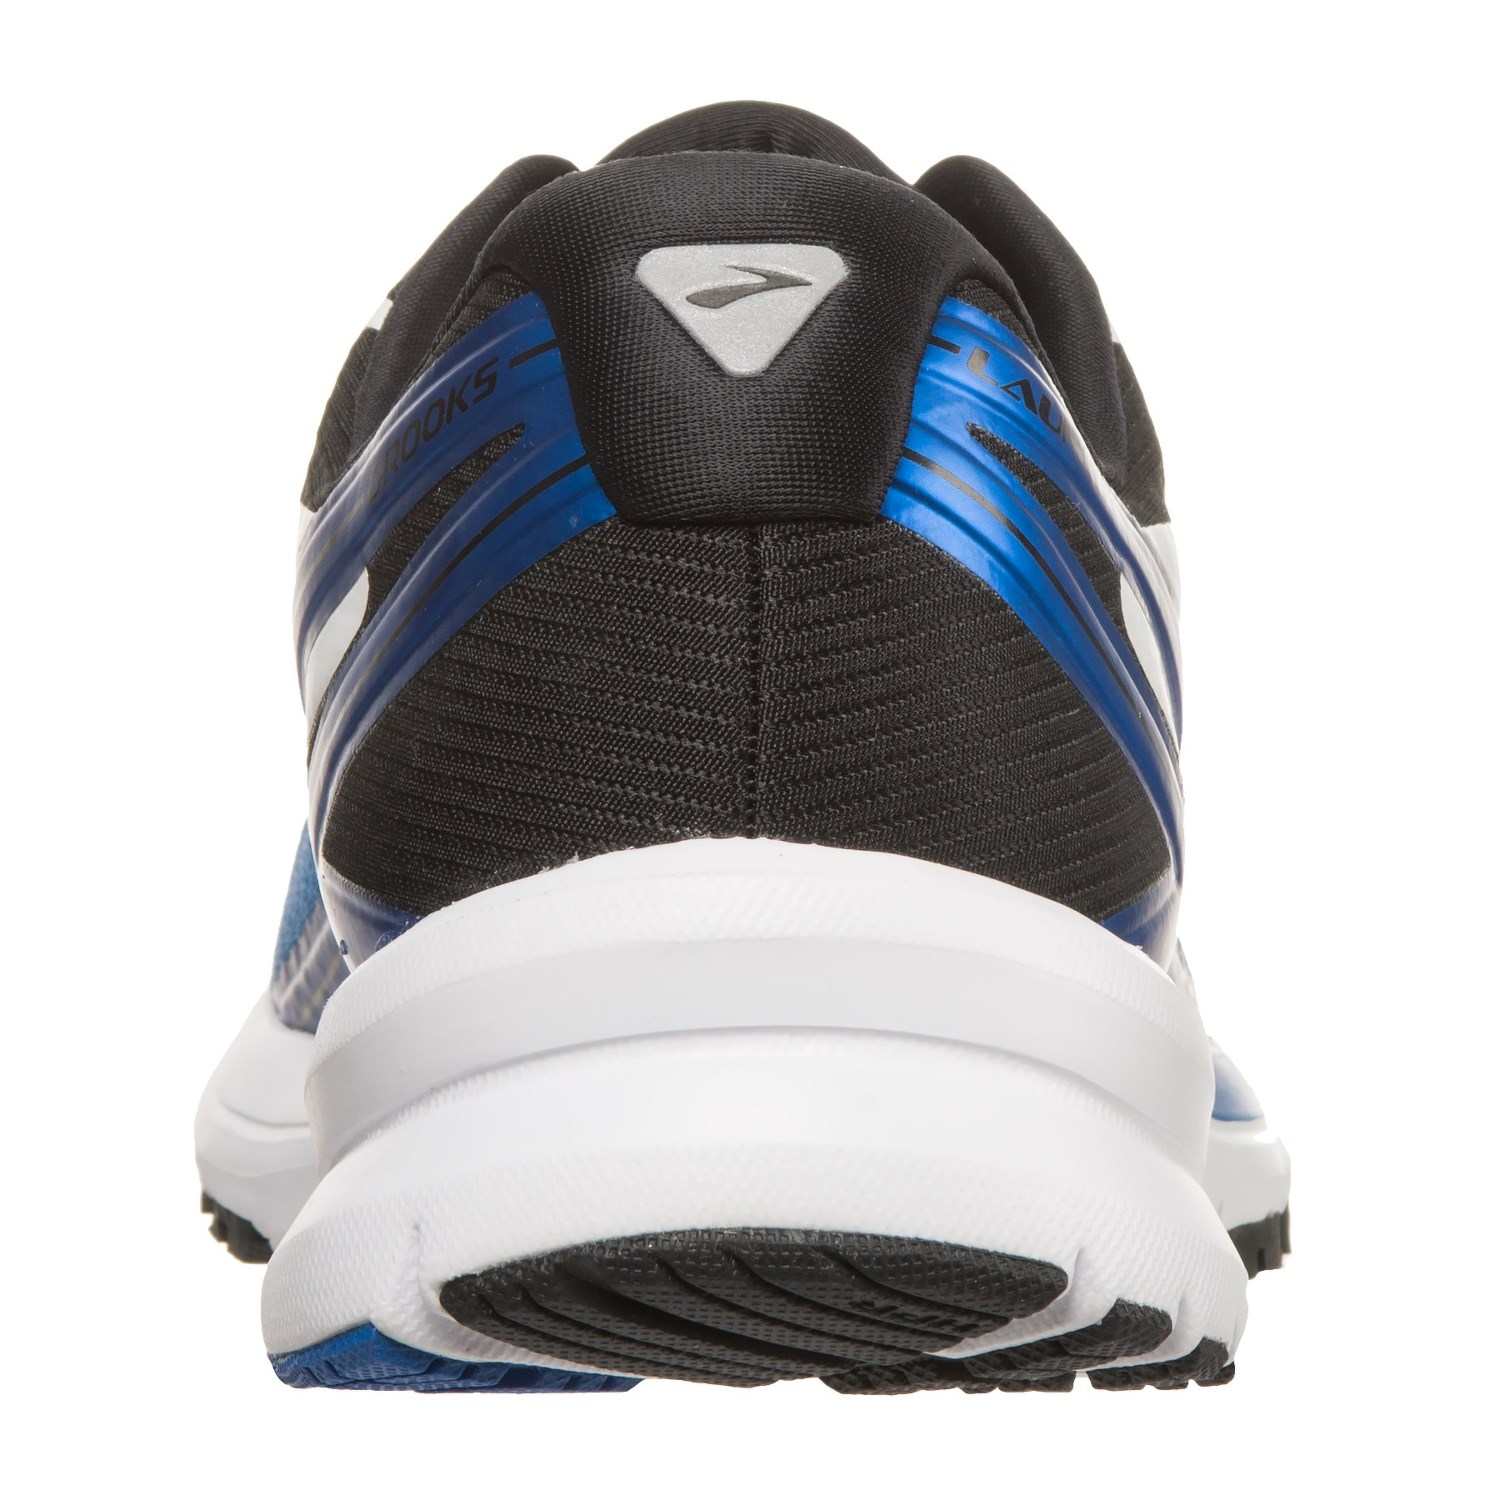 Are Brooks Launch Good Running Shoes